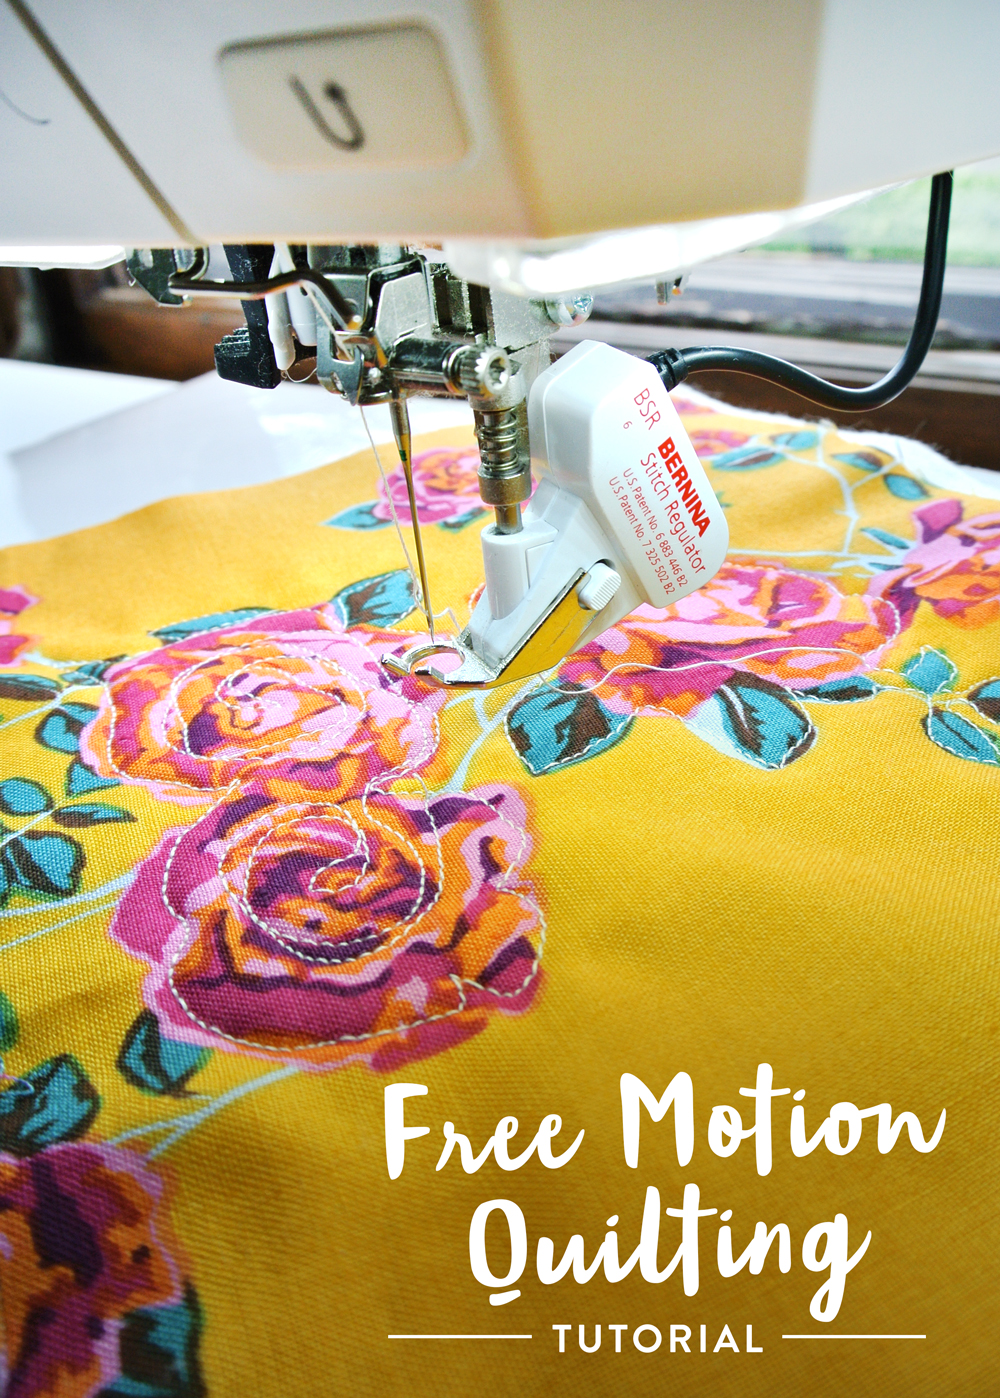 Free Motion Quilting Tutorial for Beginners - Suzy Quilts : freehand quilting with sewing machine - Adamdwight.com